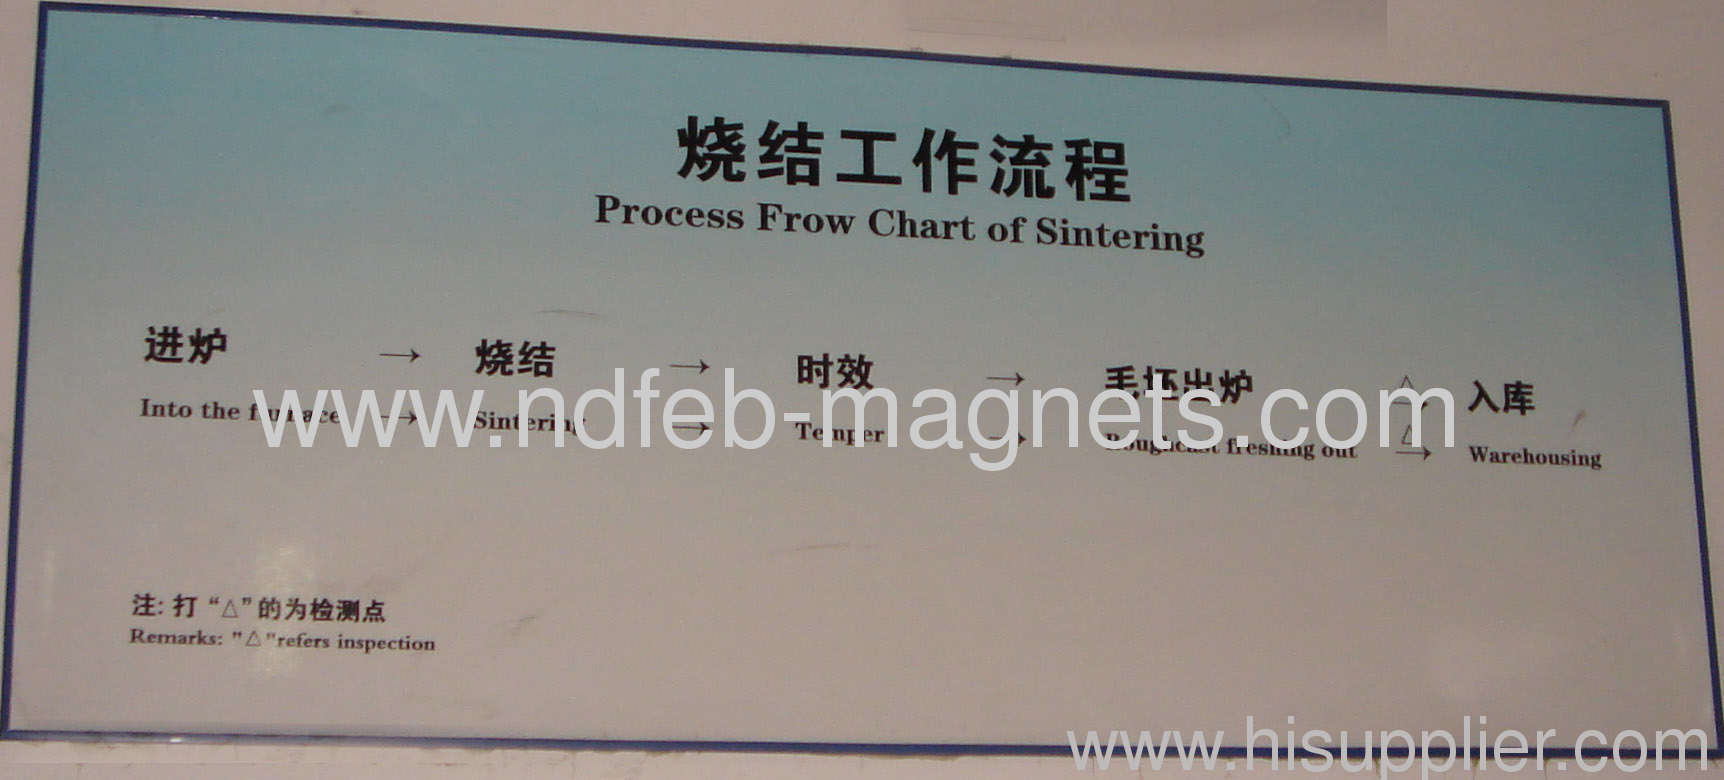 4 process flow chart of sintering